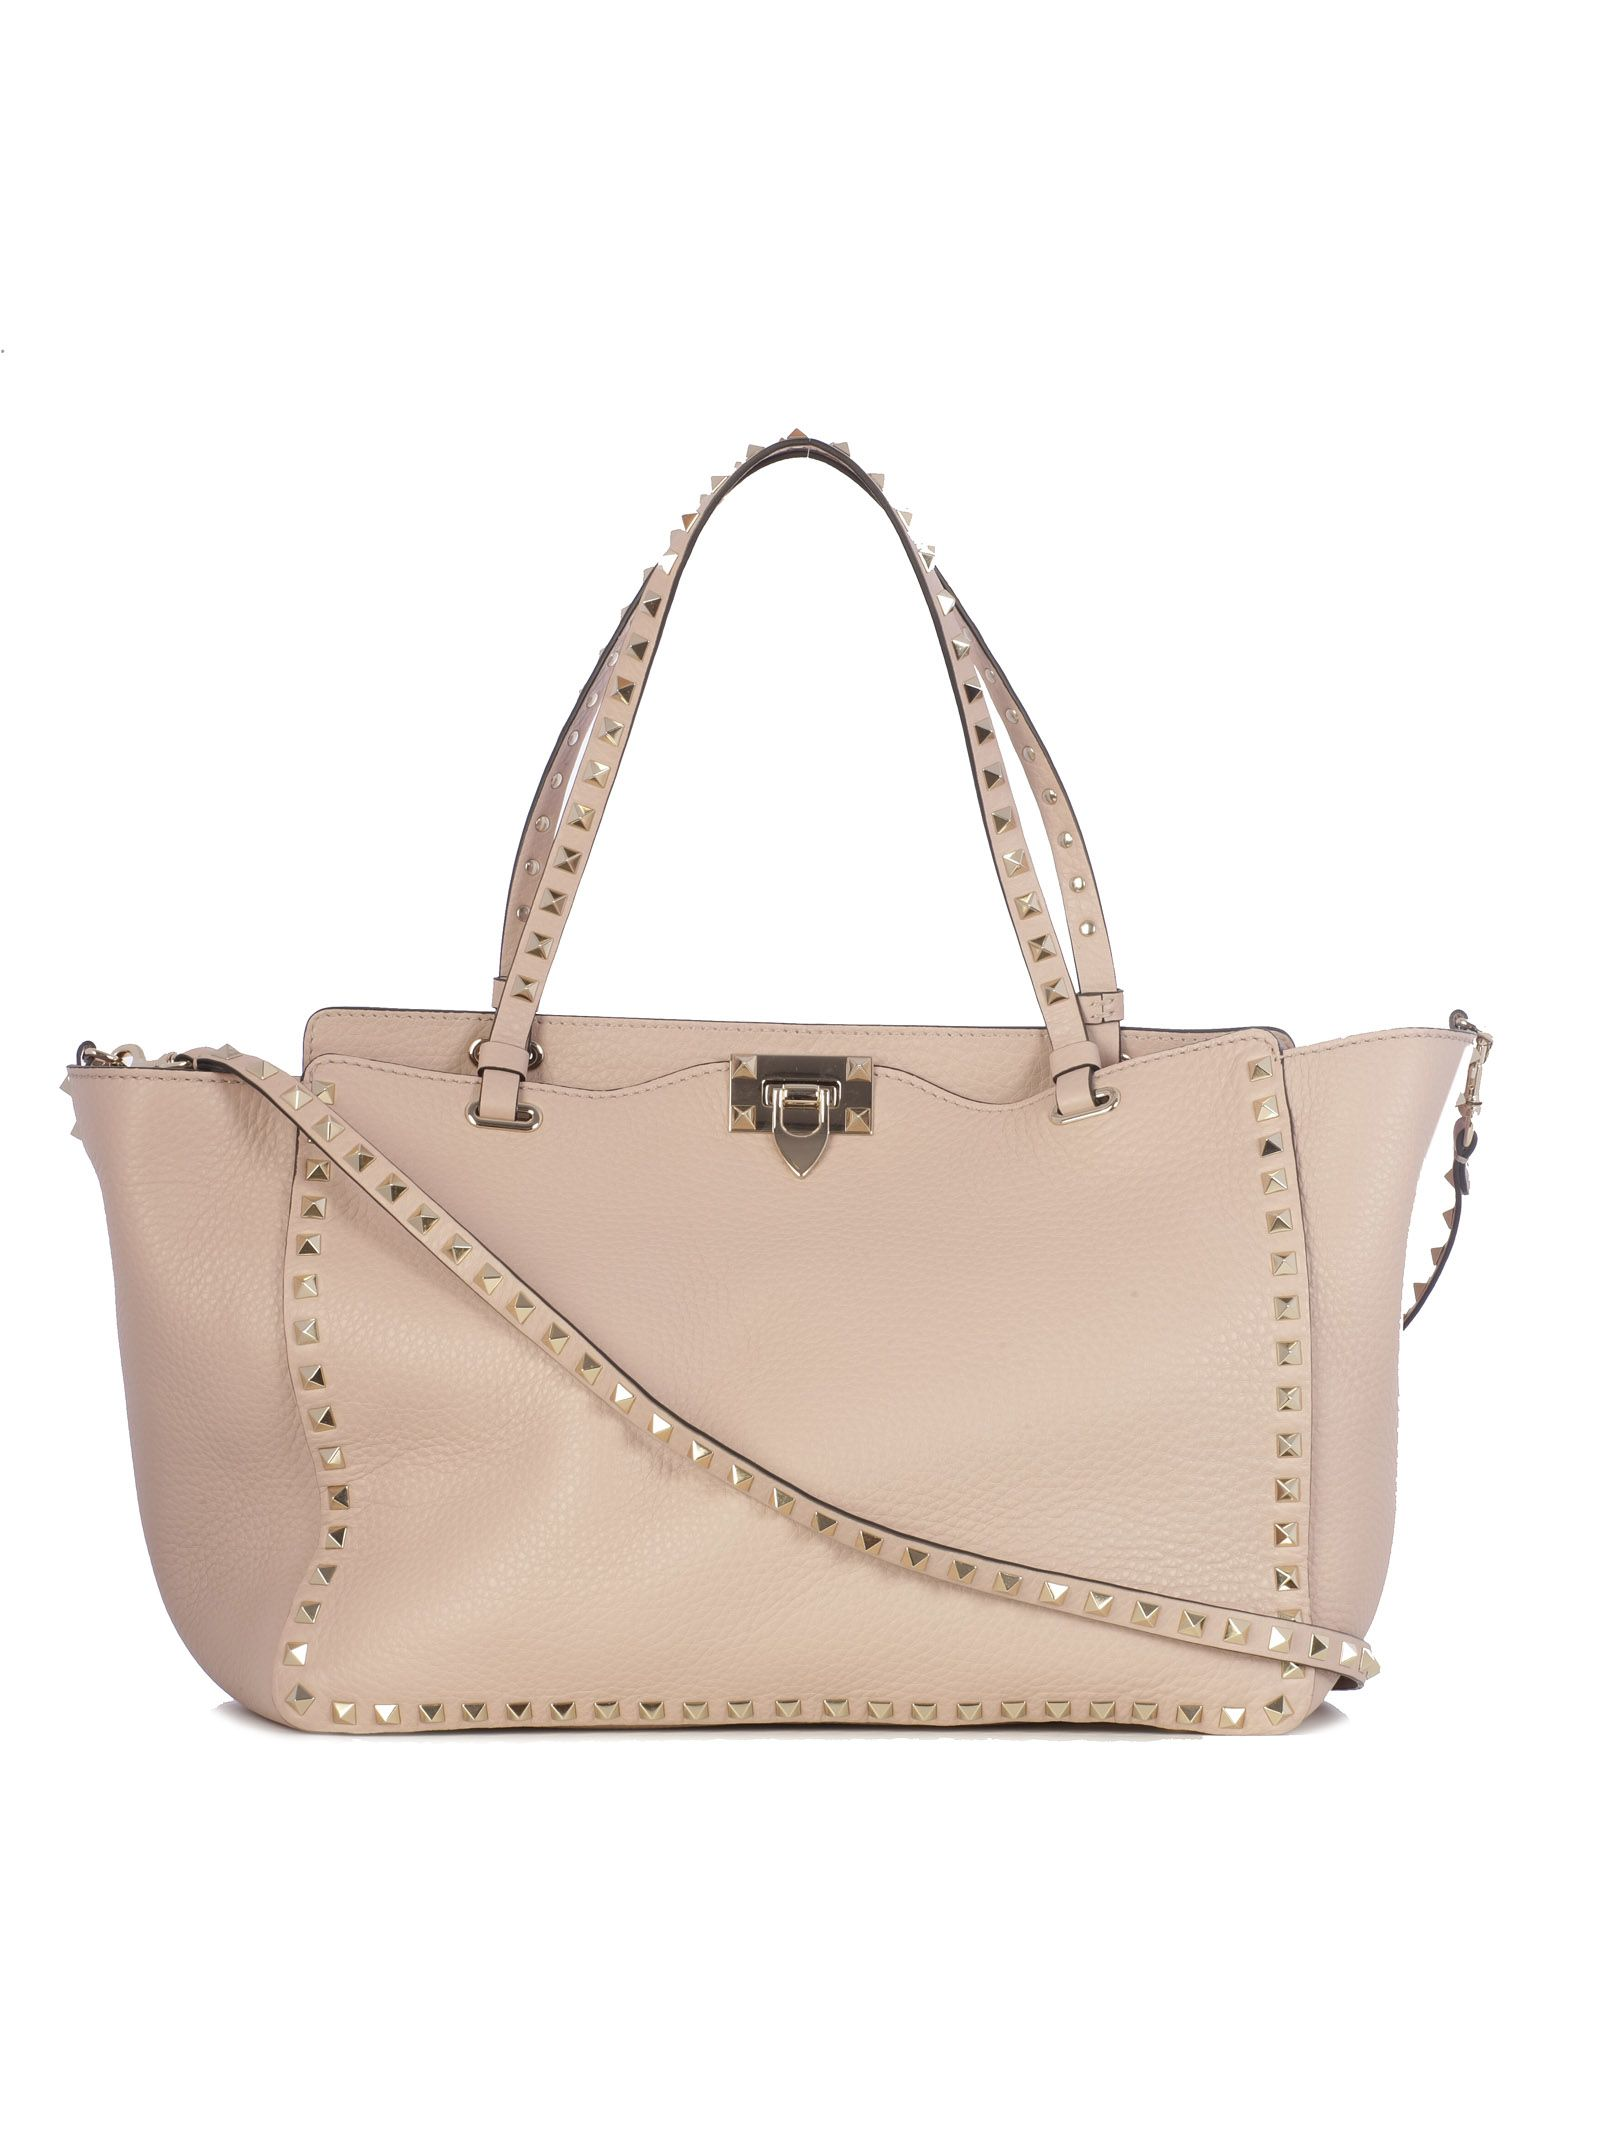 Valentino Bags EMBELLISHED TRAPEZE TOTE